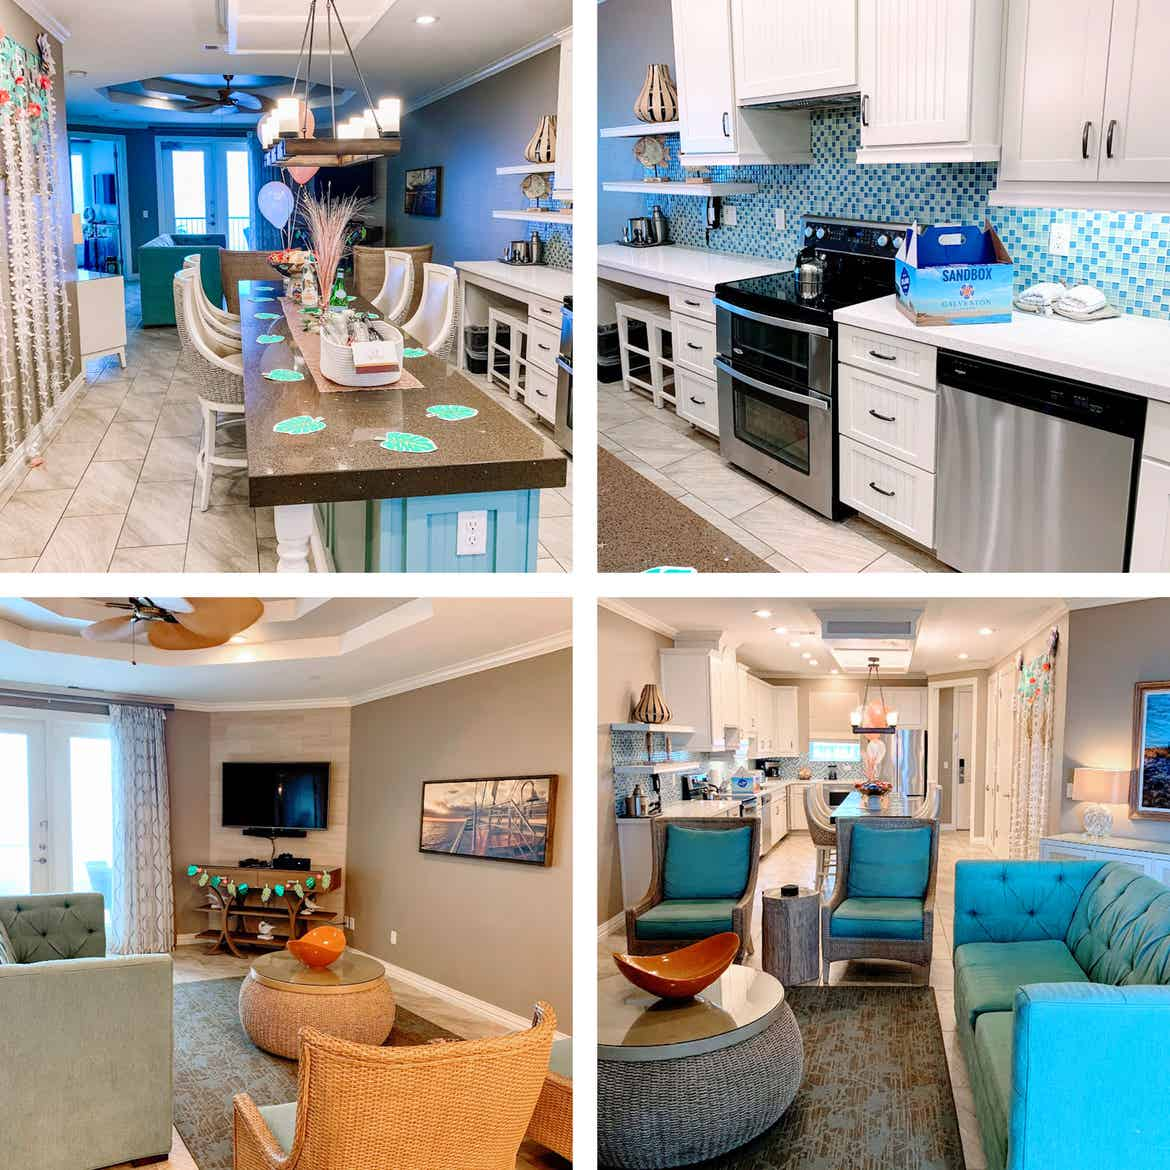 A collage of the interior of our Signature Collection villa at Galveston Beach Resort.